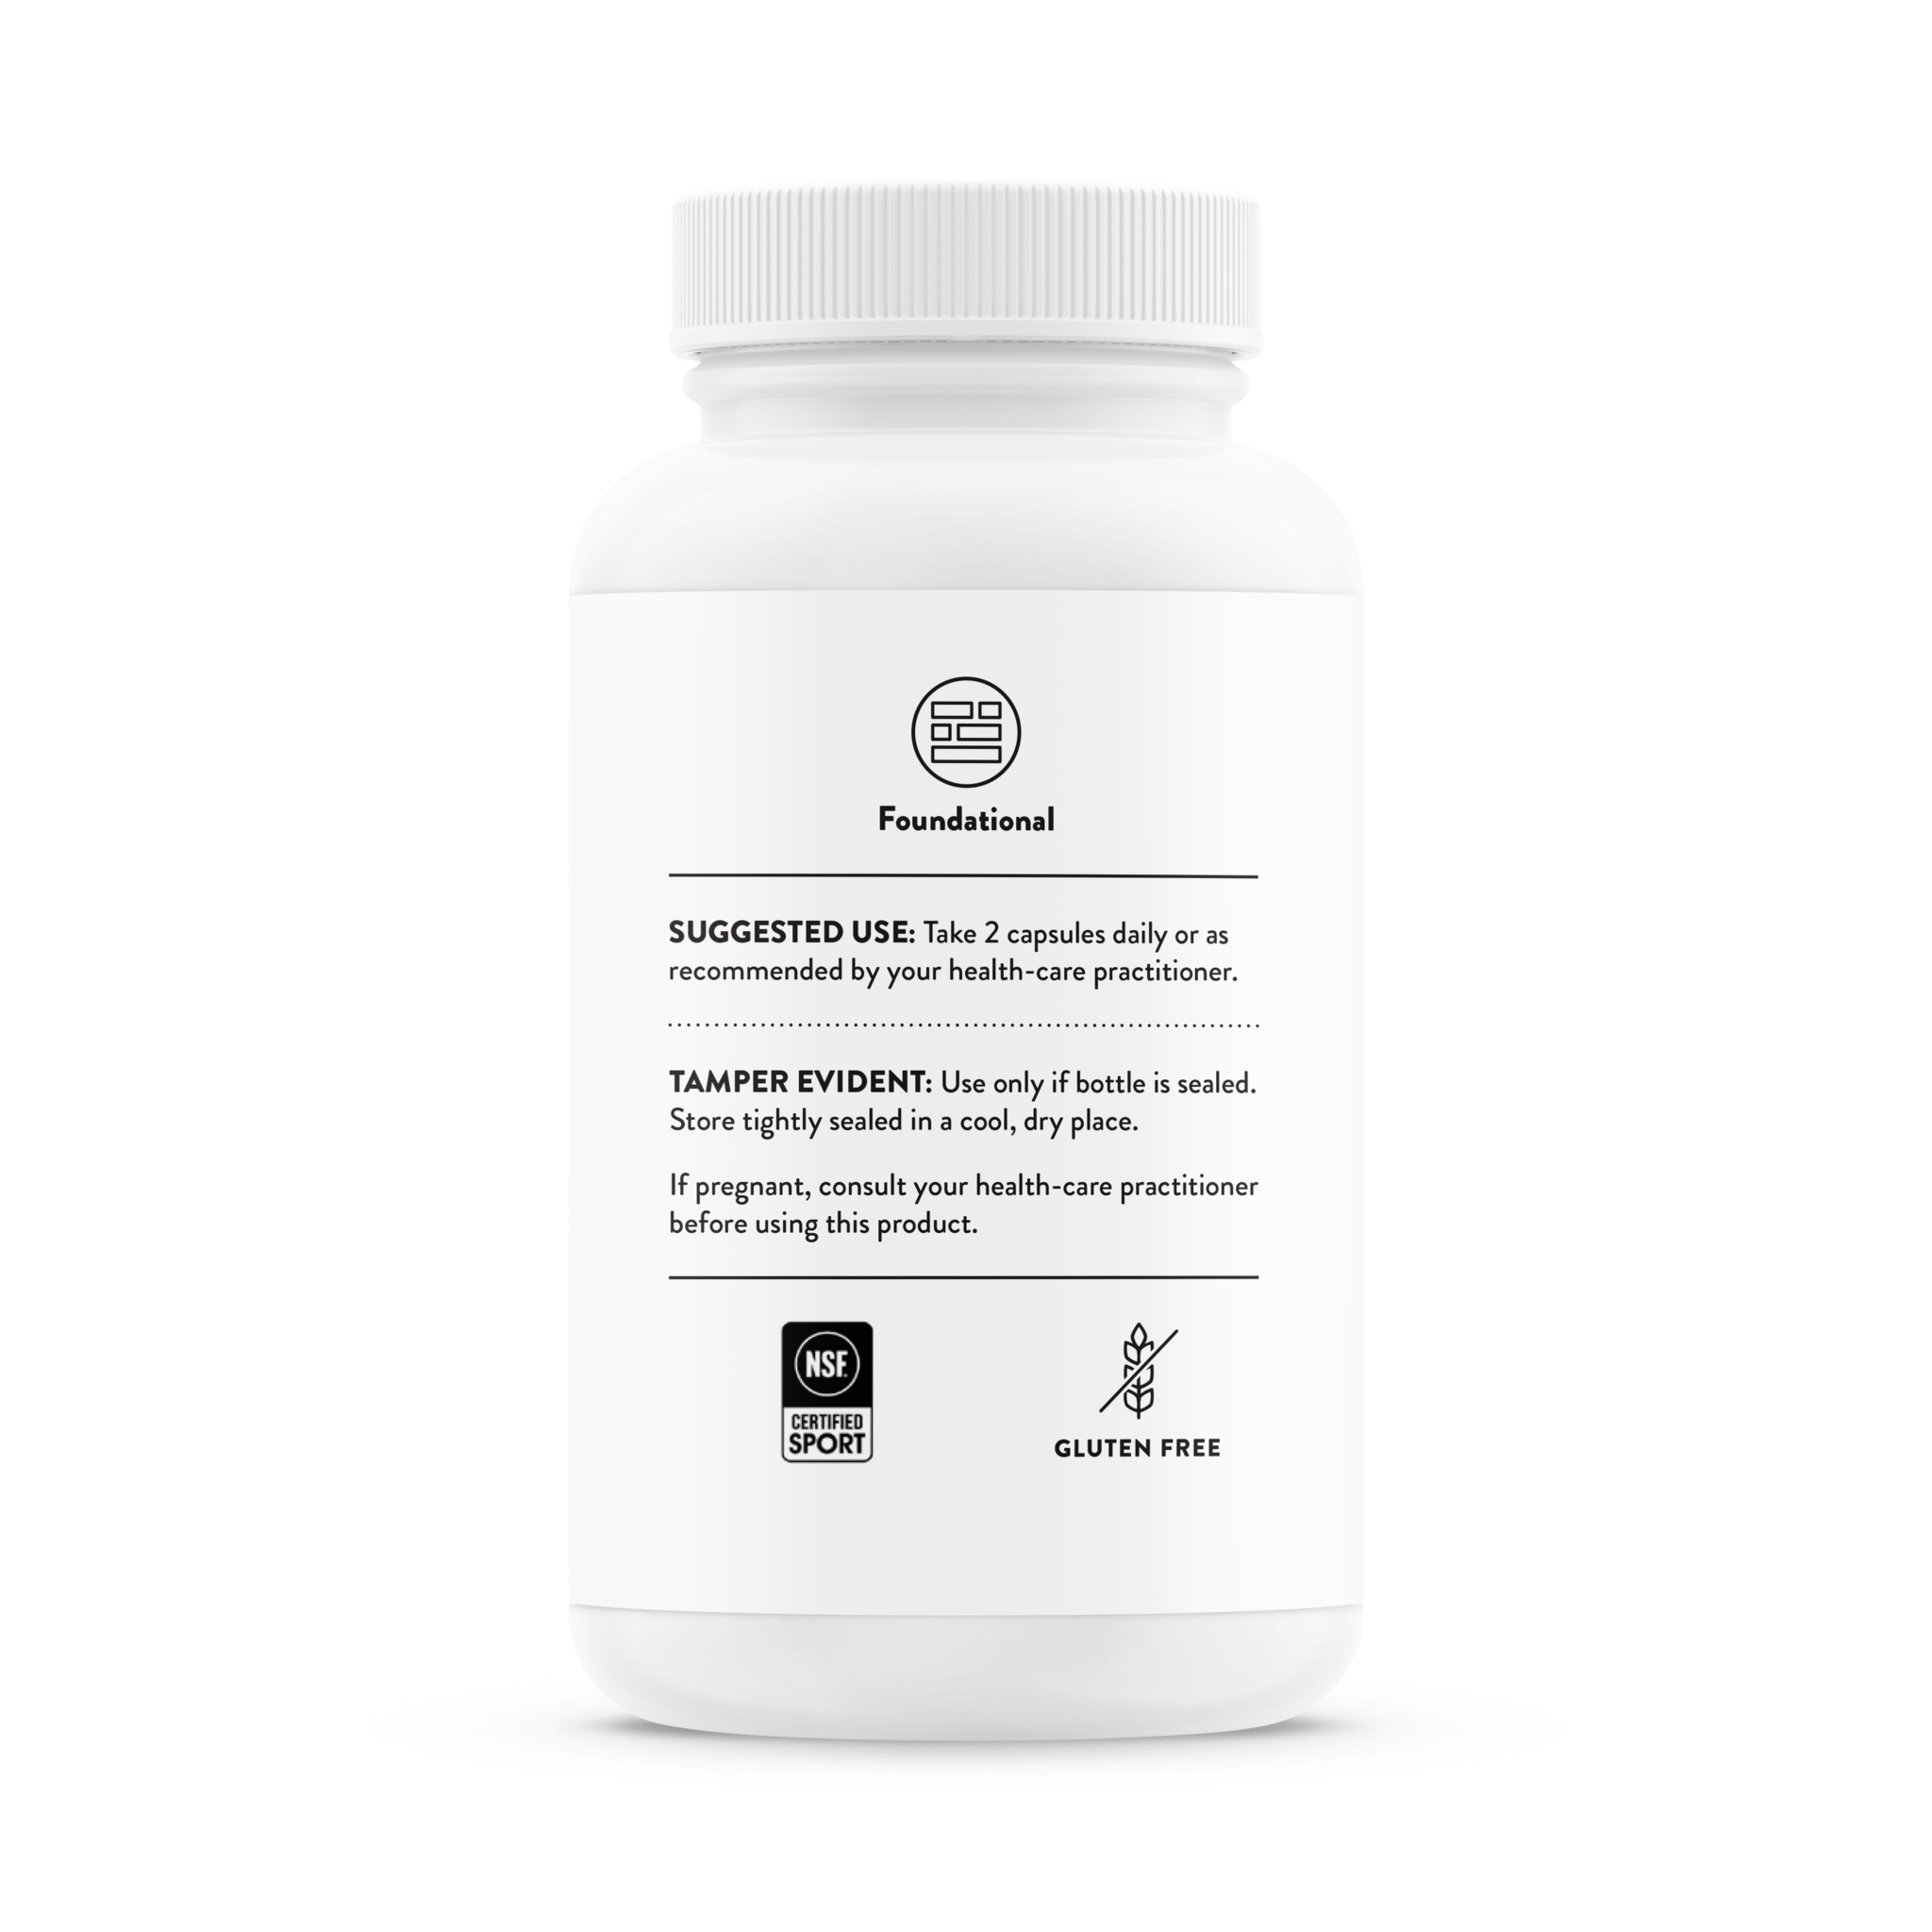 thorne-basic-nutrients-2day-nsf-certified-for-sport-60-kapsul-2